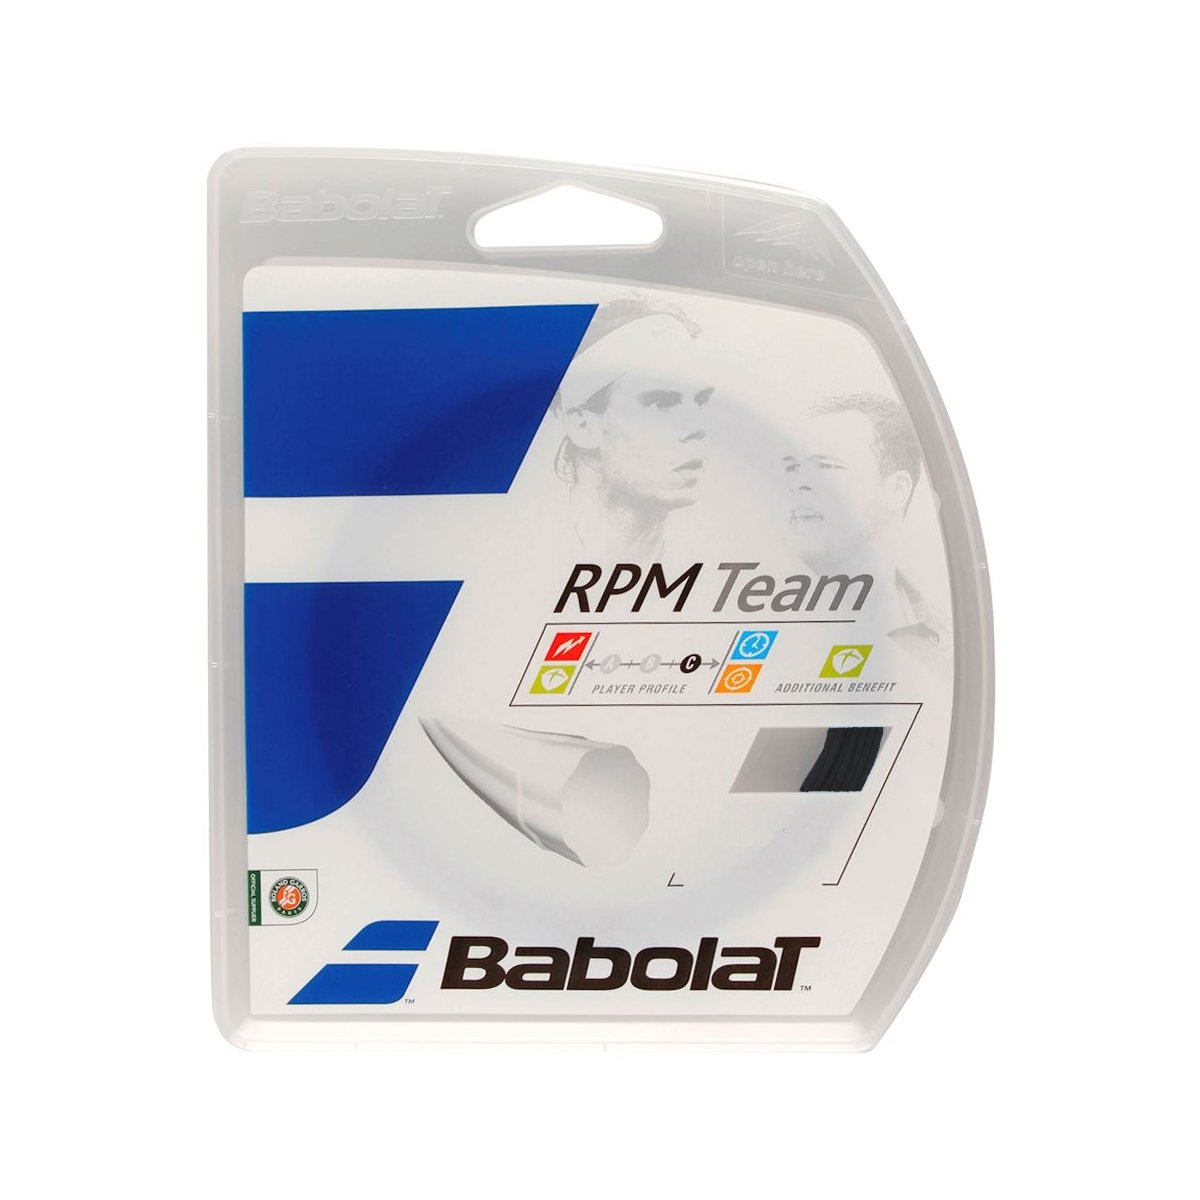 Corda Babolat RPM Team 16L 1.30mm Preta - Set Individual